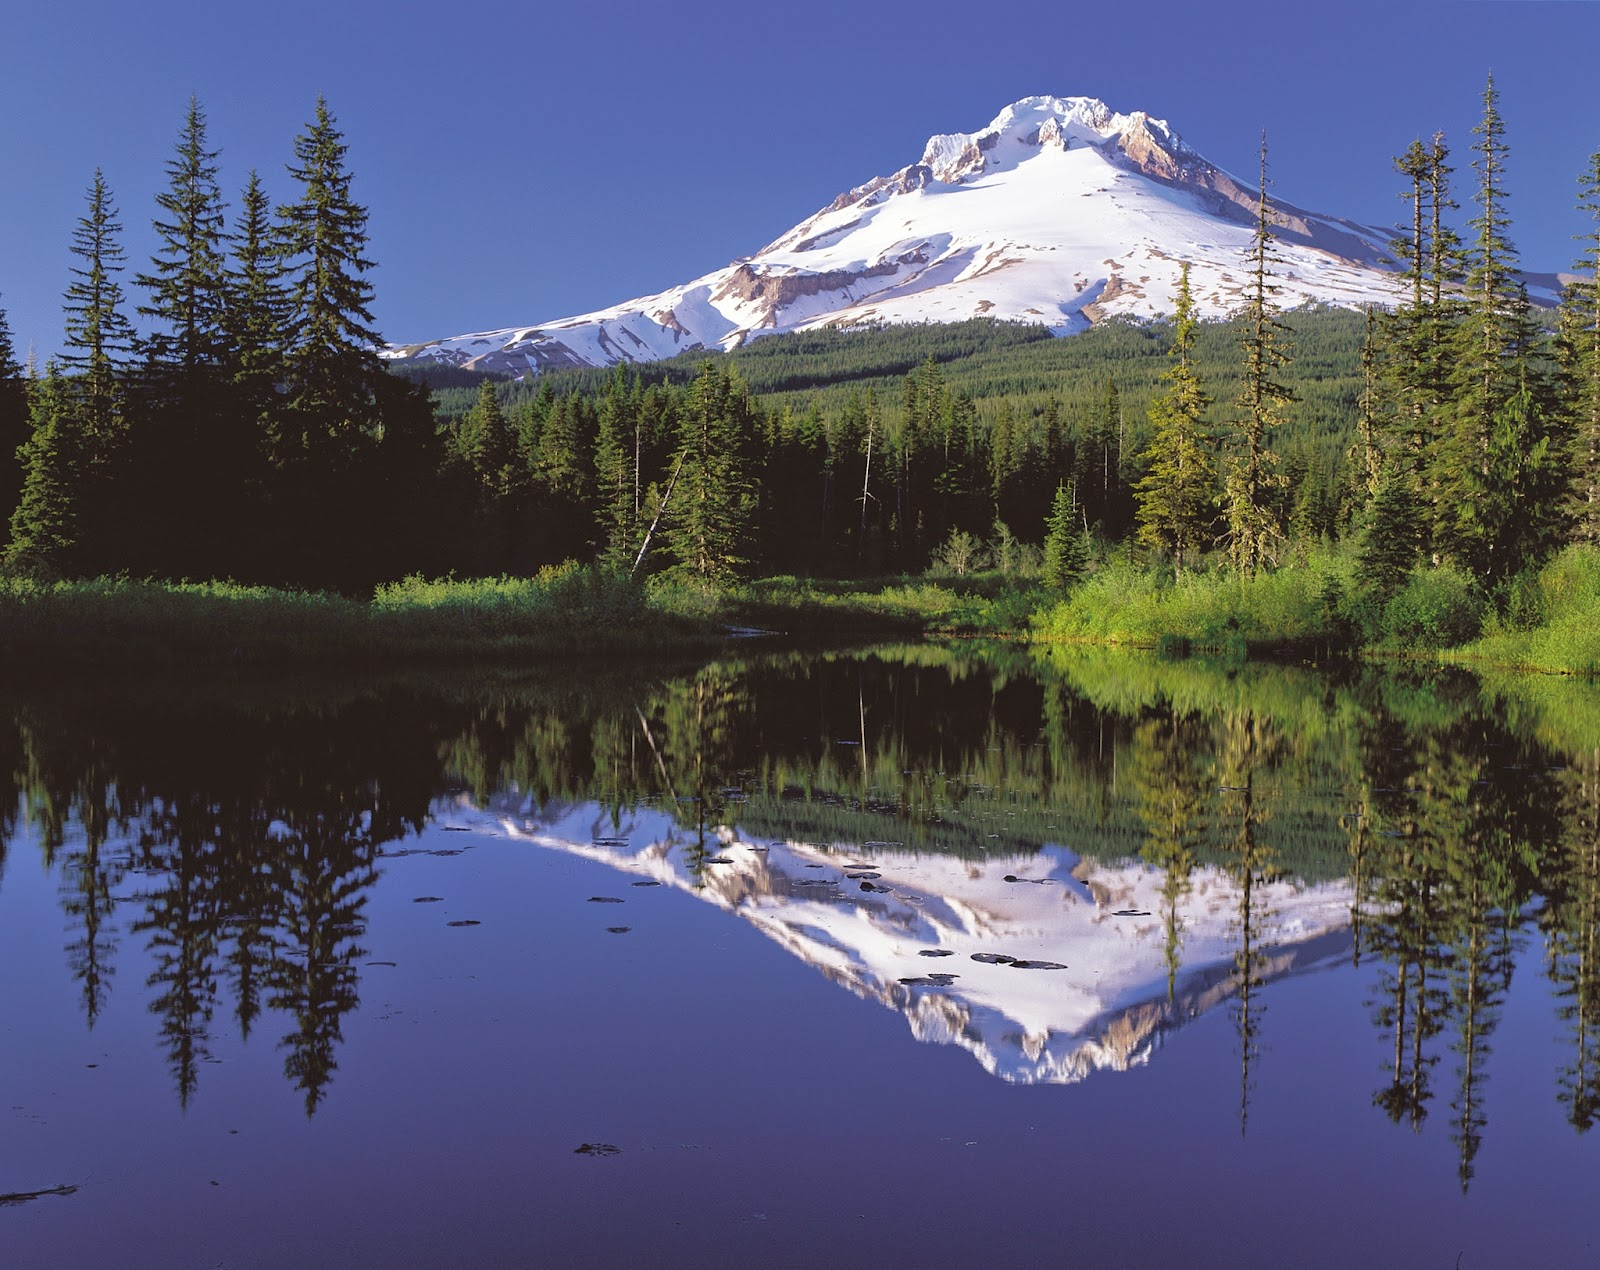 By Oregon's Mt. Hood Territory. (http://www.fhwa.dot.gov/byways/photos/62736.) [Public domain], via Wikimedia Commons